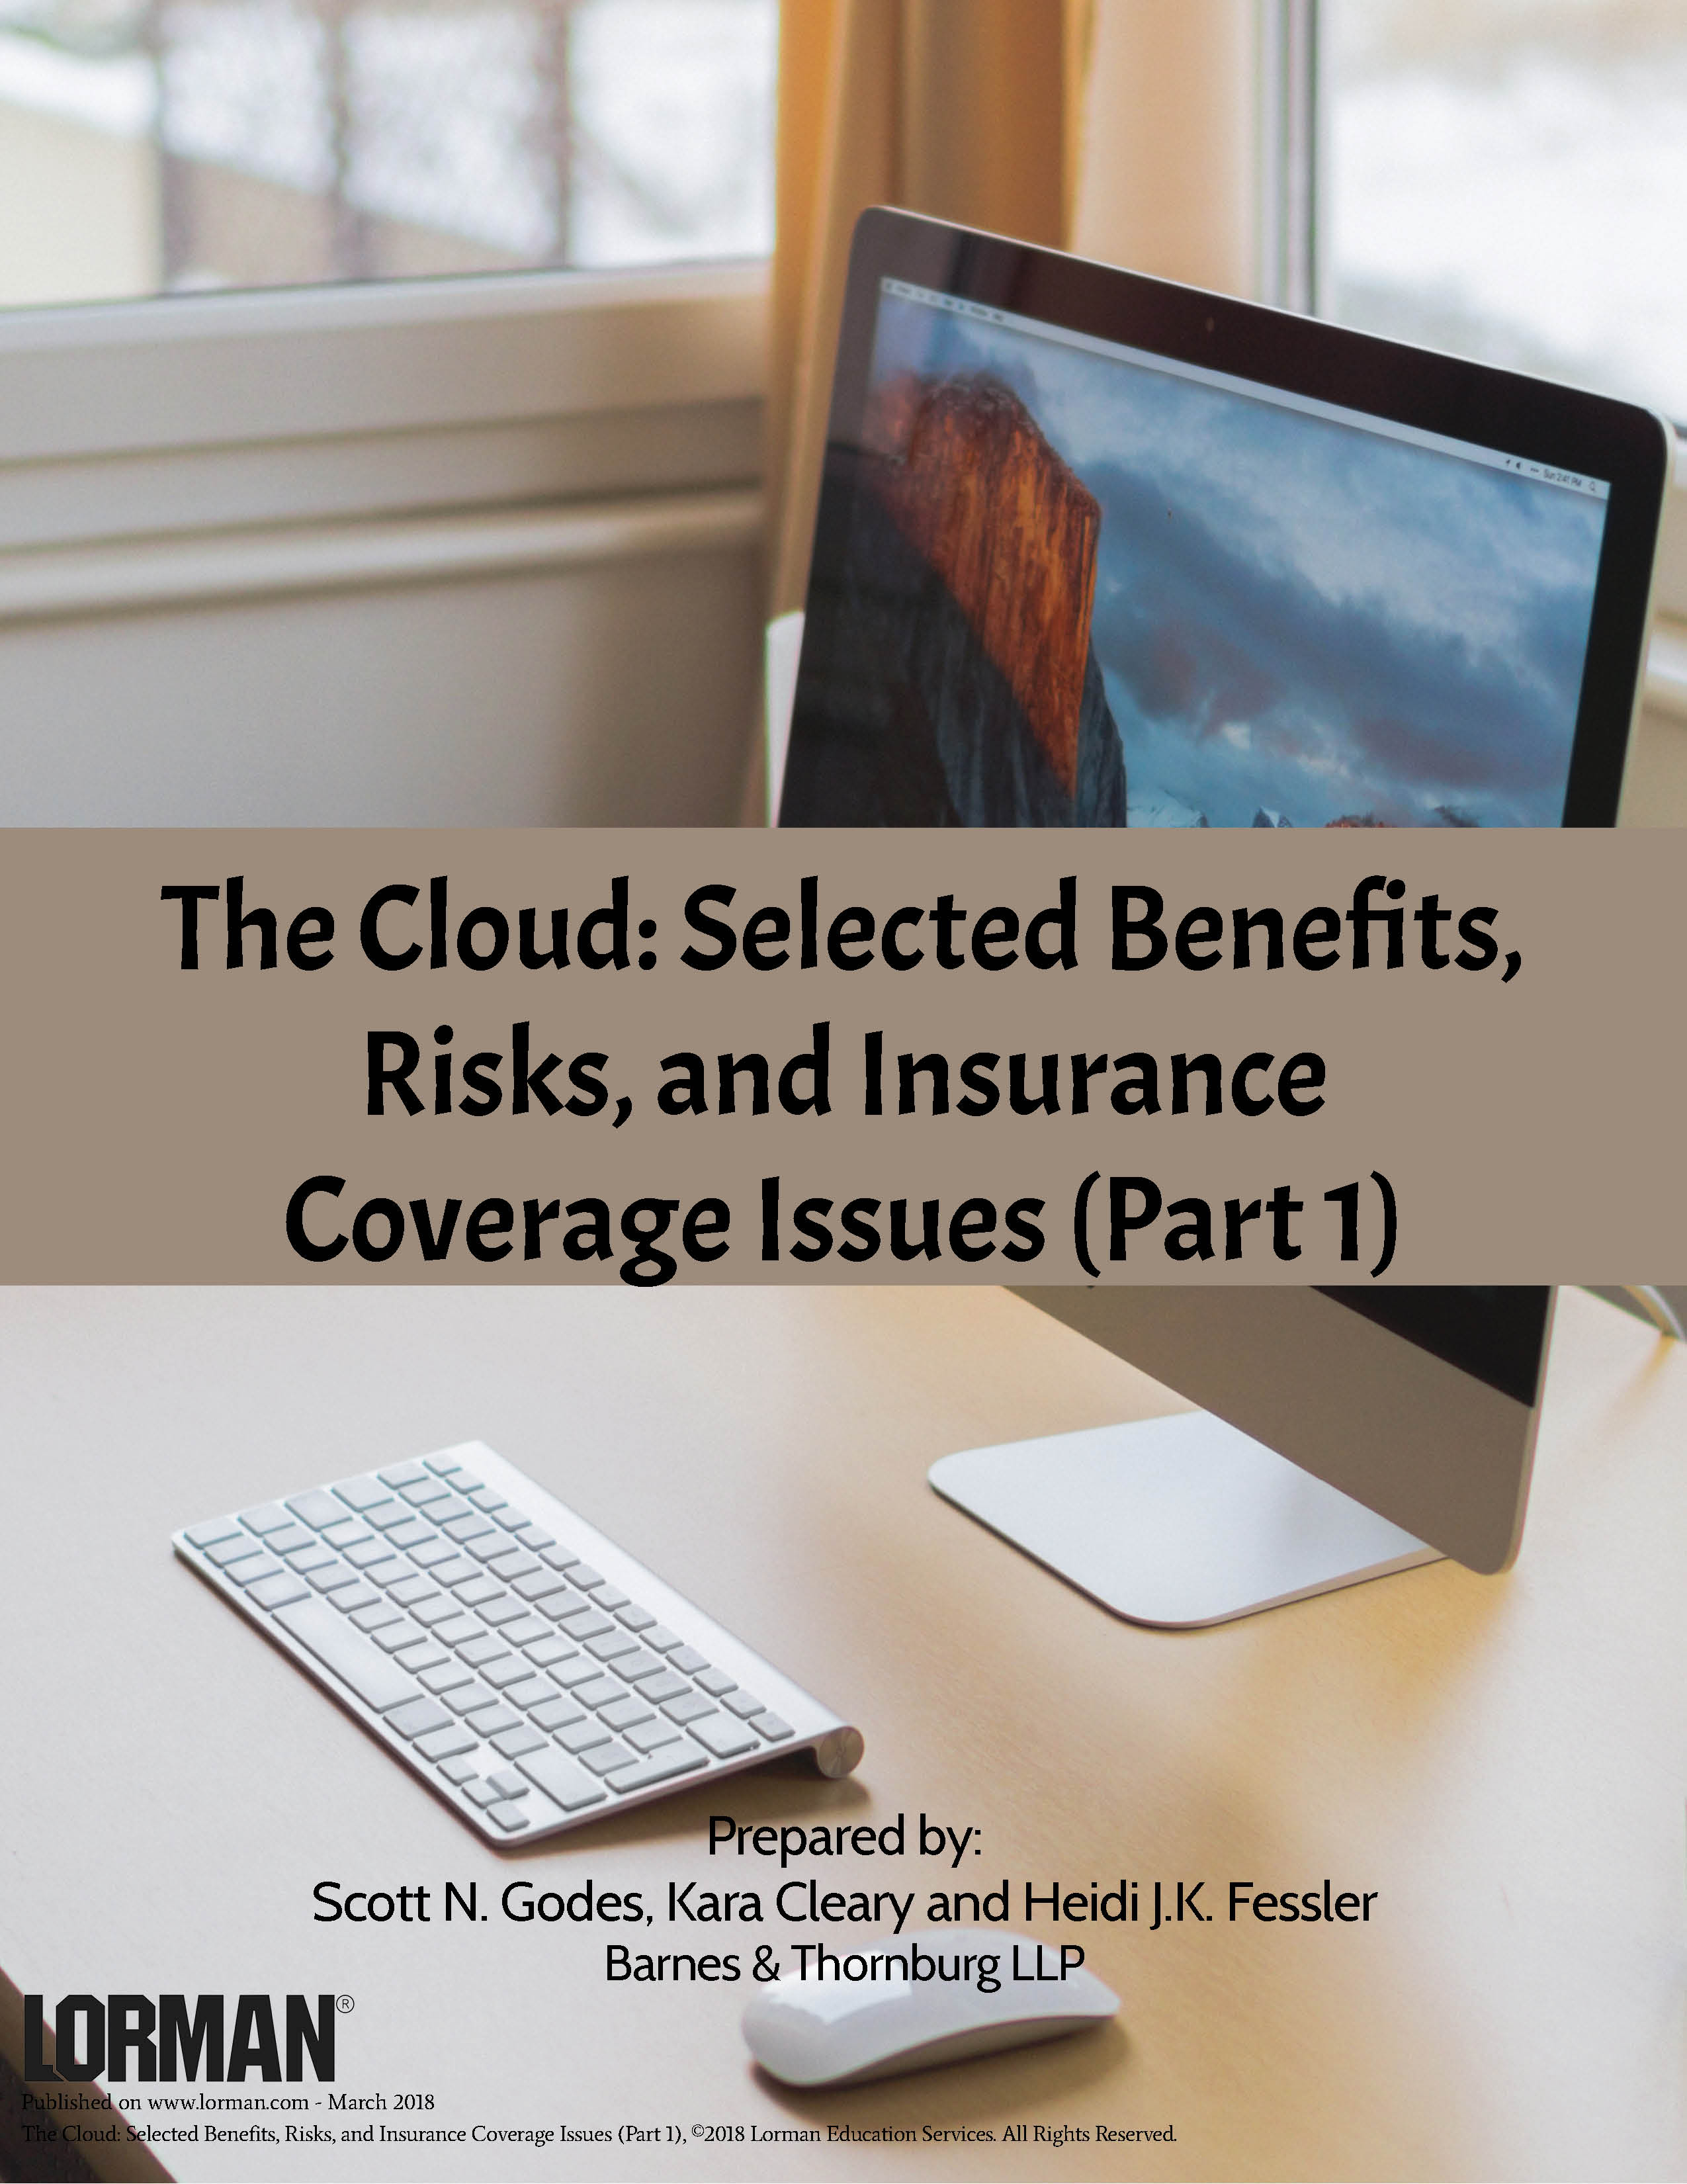 The Cloud: Selected Benefits, Risks, and Insurance Coverage Issues (Part 1)